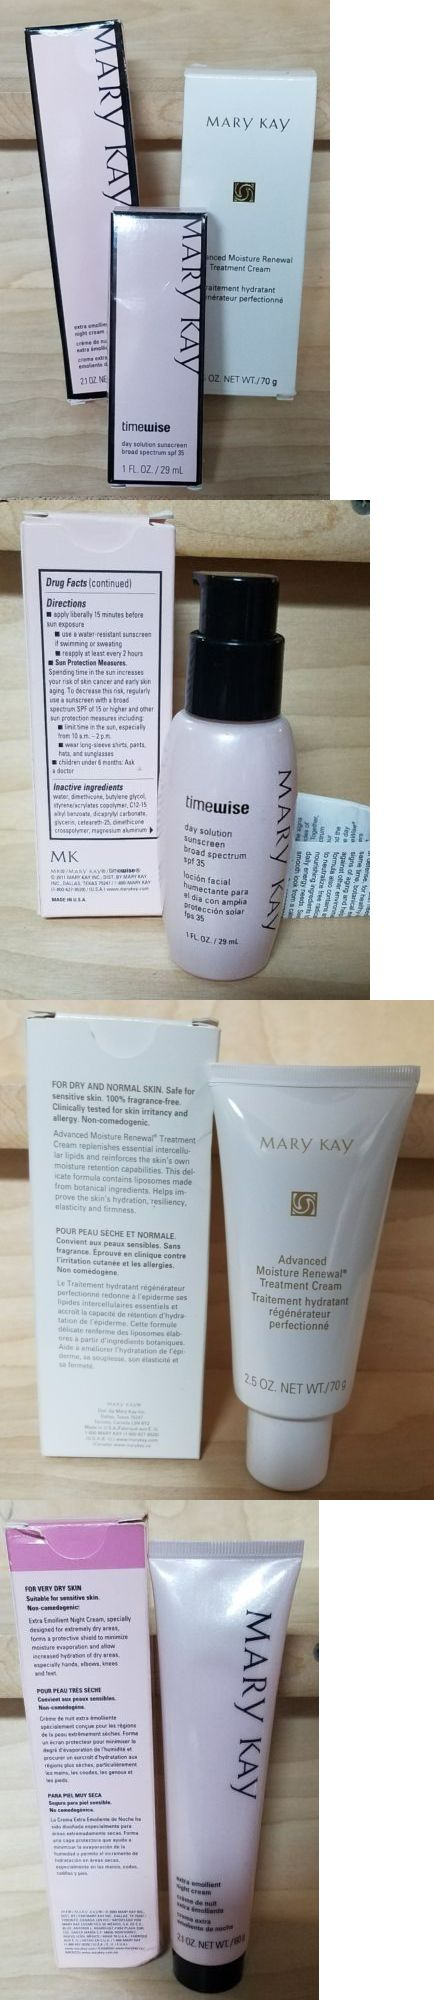 wholesale Skin Care: Mary Kay Skin Treatments Lot: Moisture Renewal, Emollient Night Cream, Sunscreen -> BUY IT NOW ONLY: $49.99 on eBay!